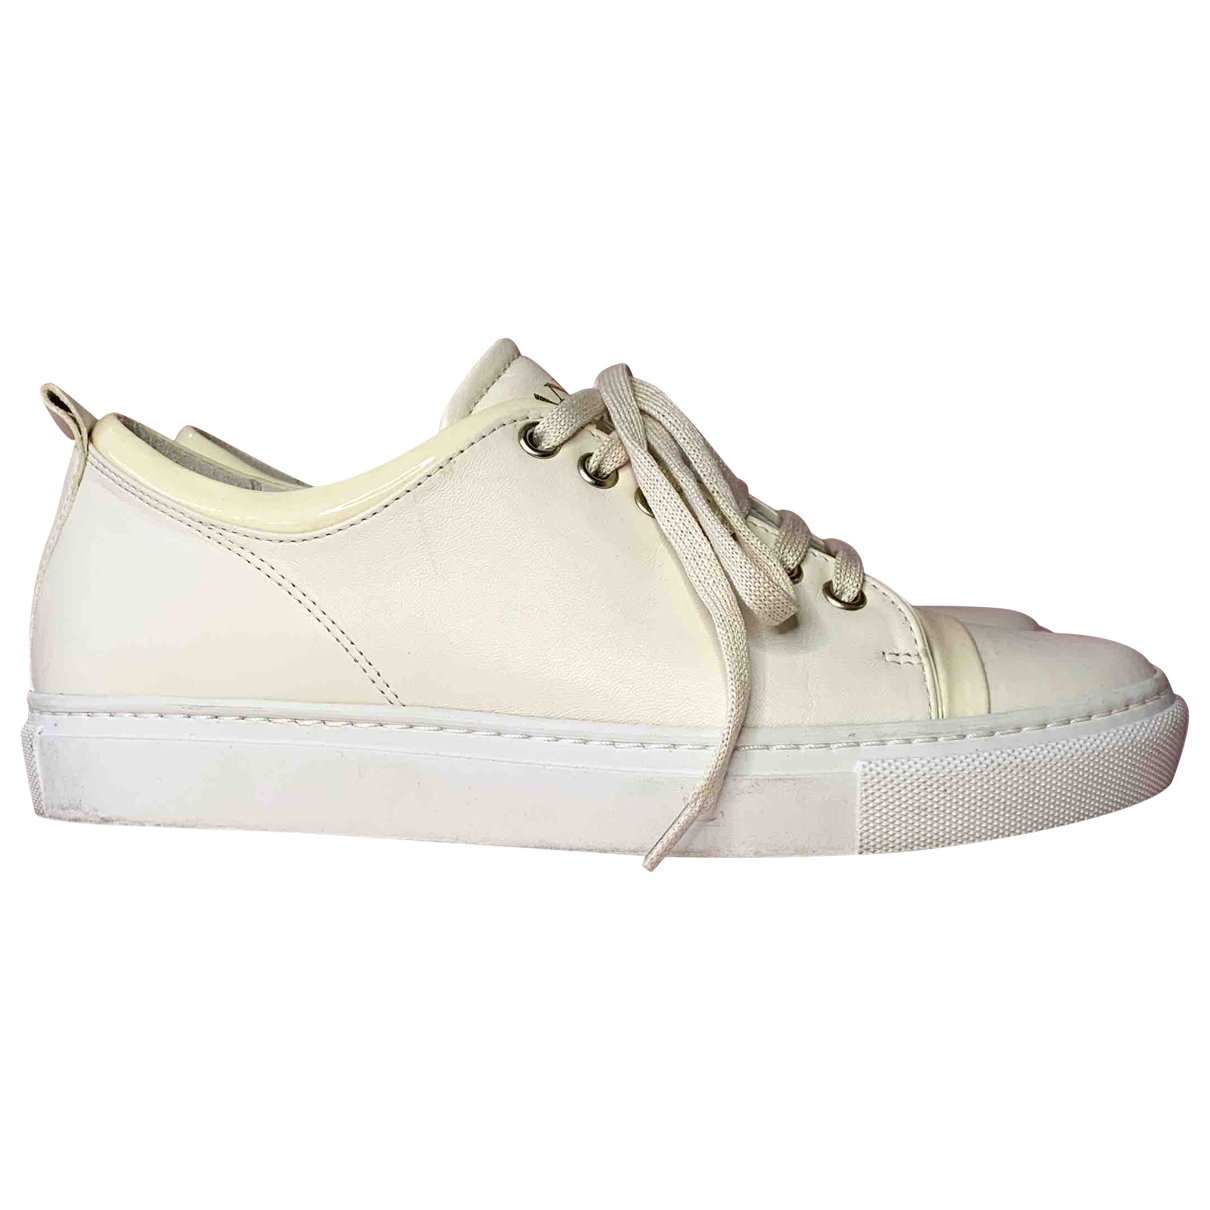 Lanvin \N White Leather Trainers for Women 37 EU